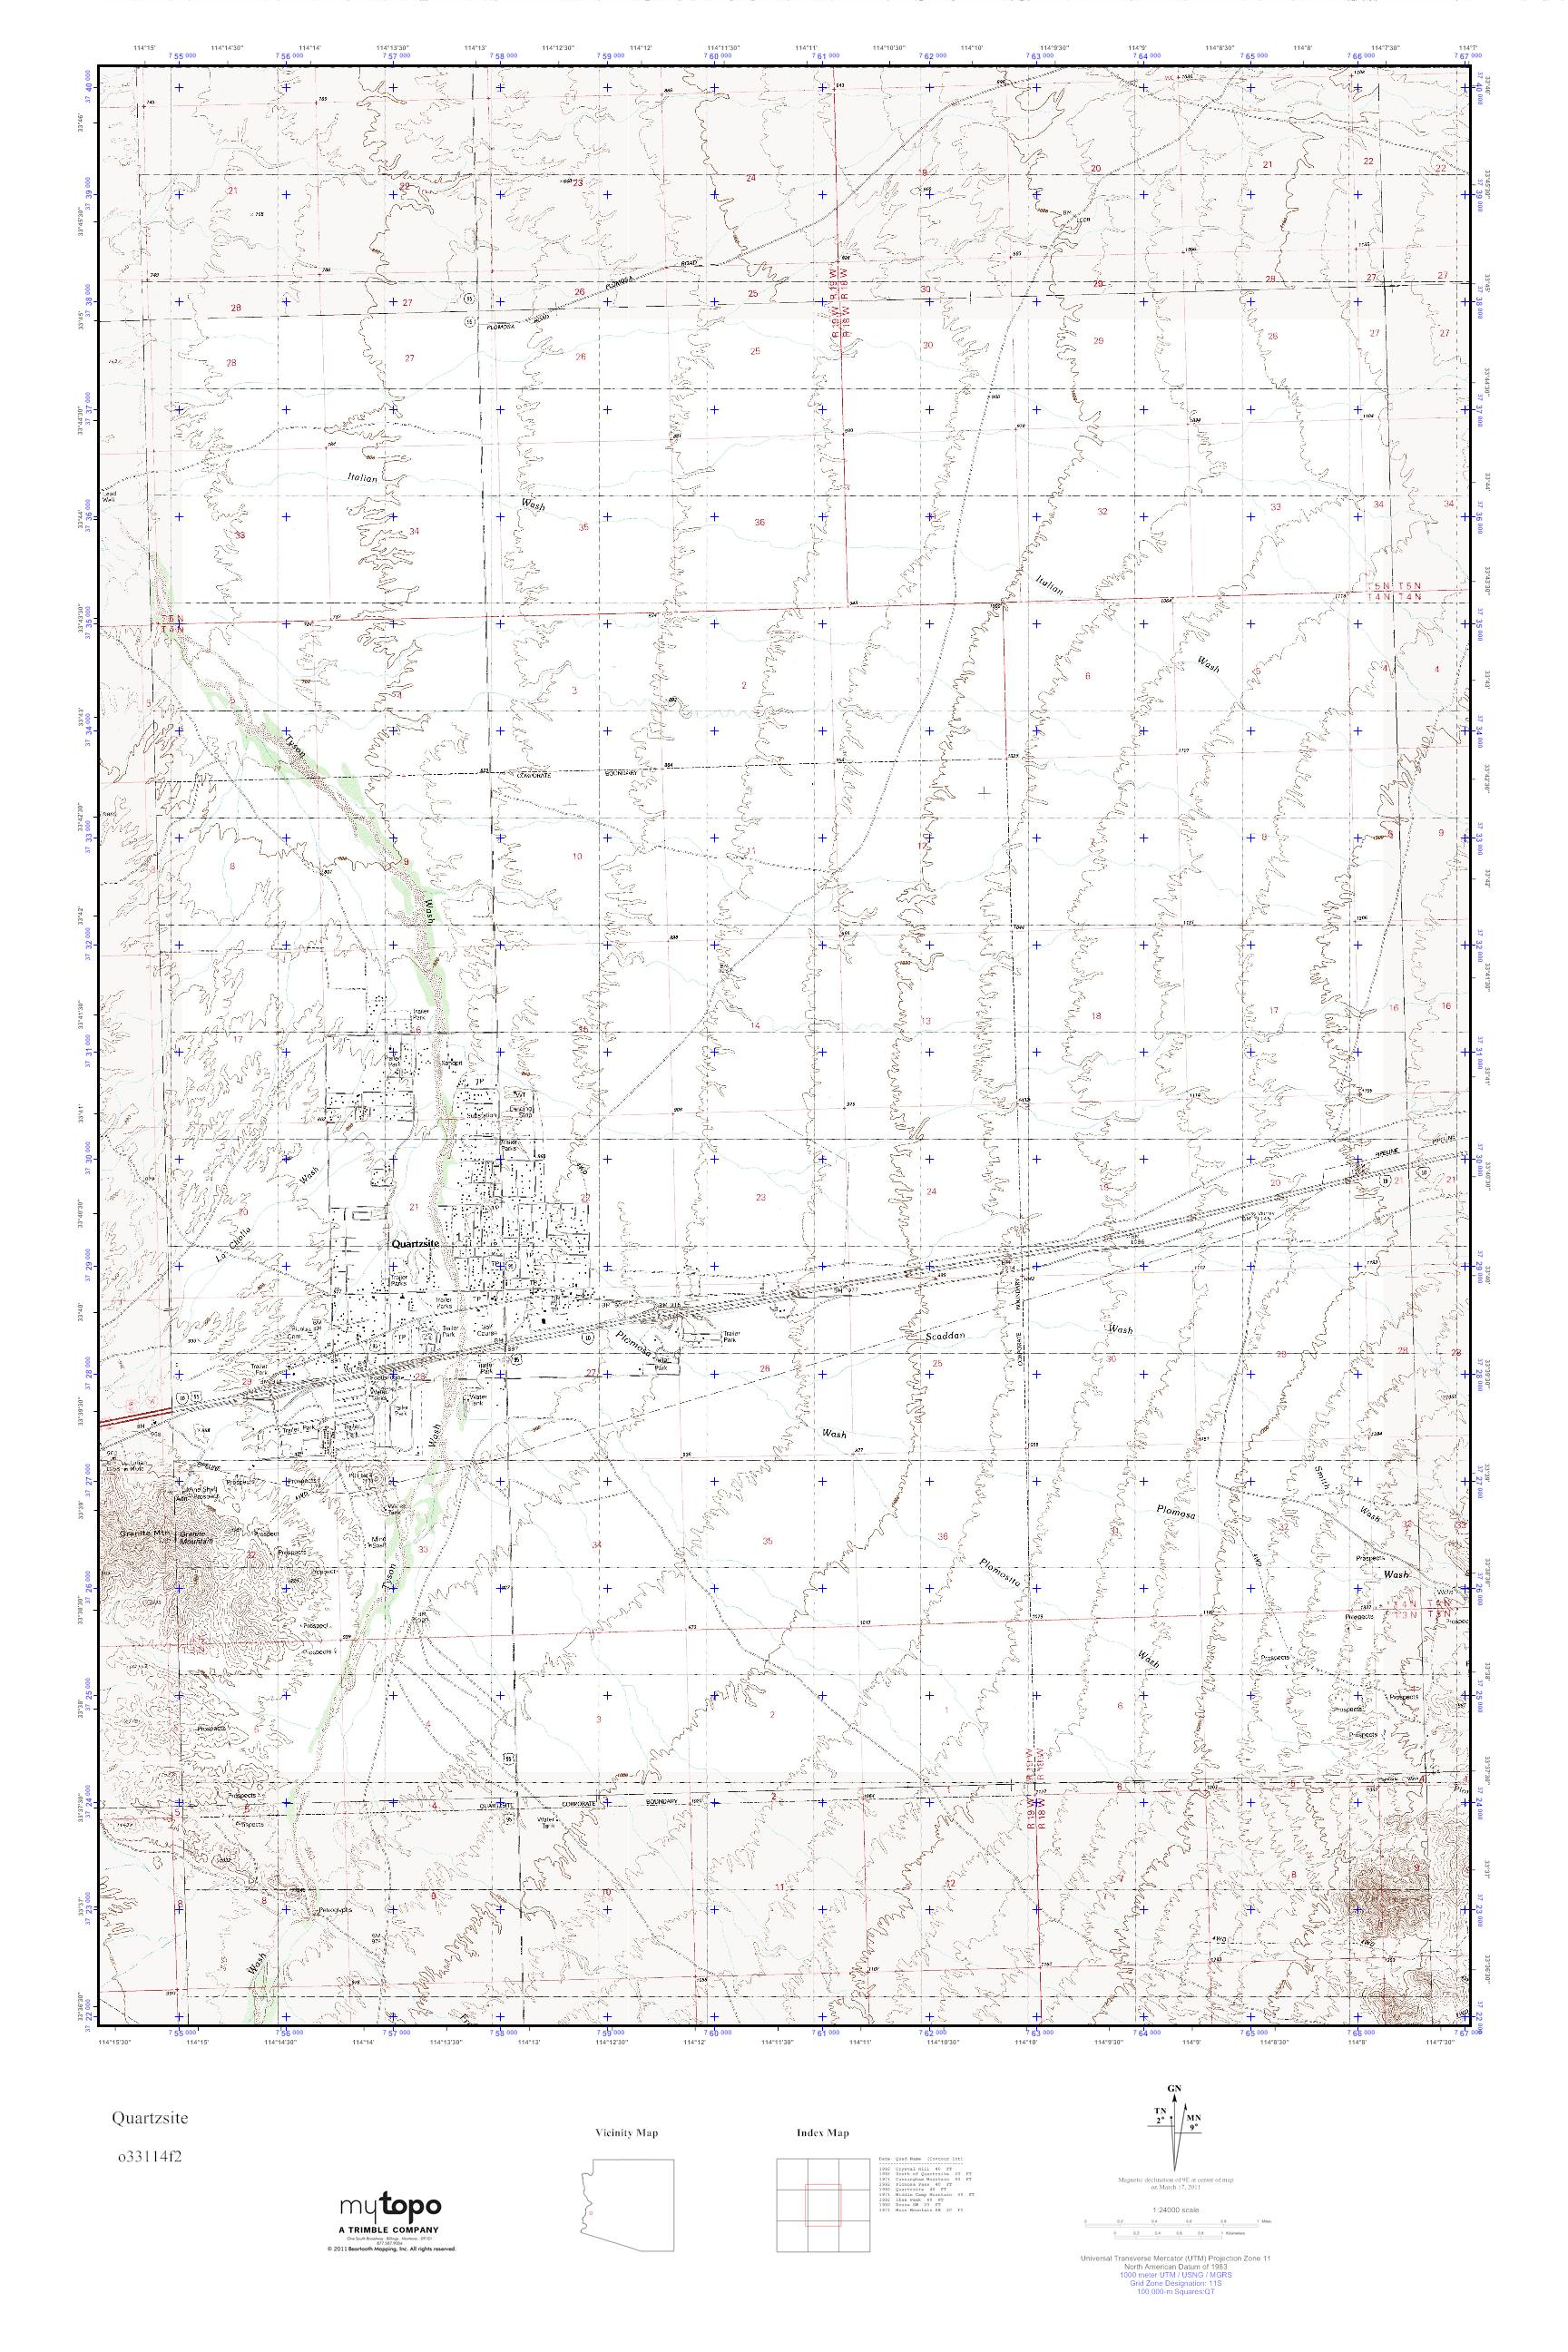 MyTopo Quartzsite, Arizona USGS Quad Topo Map on